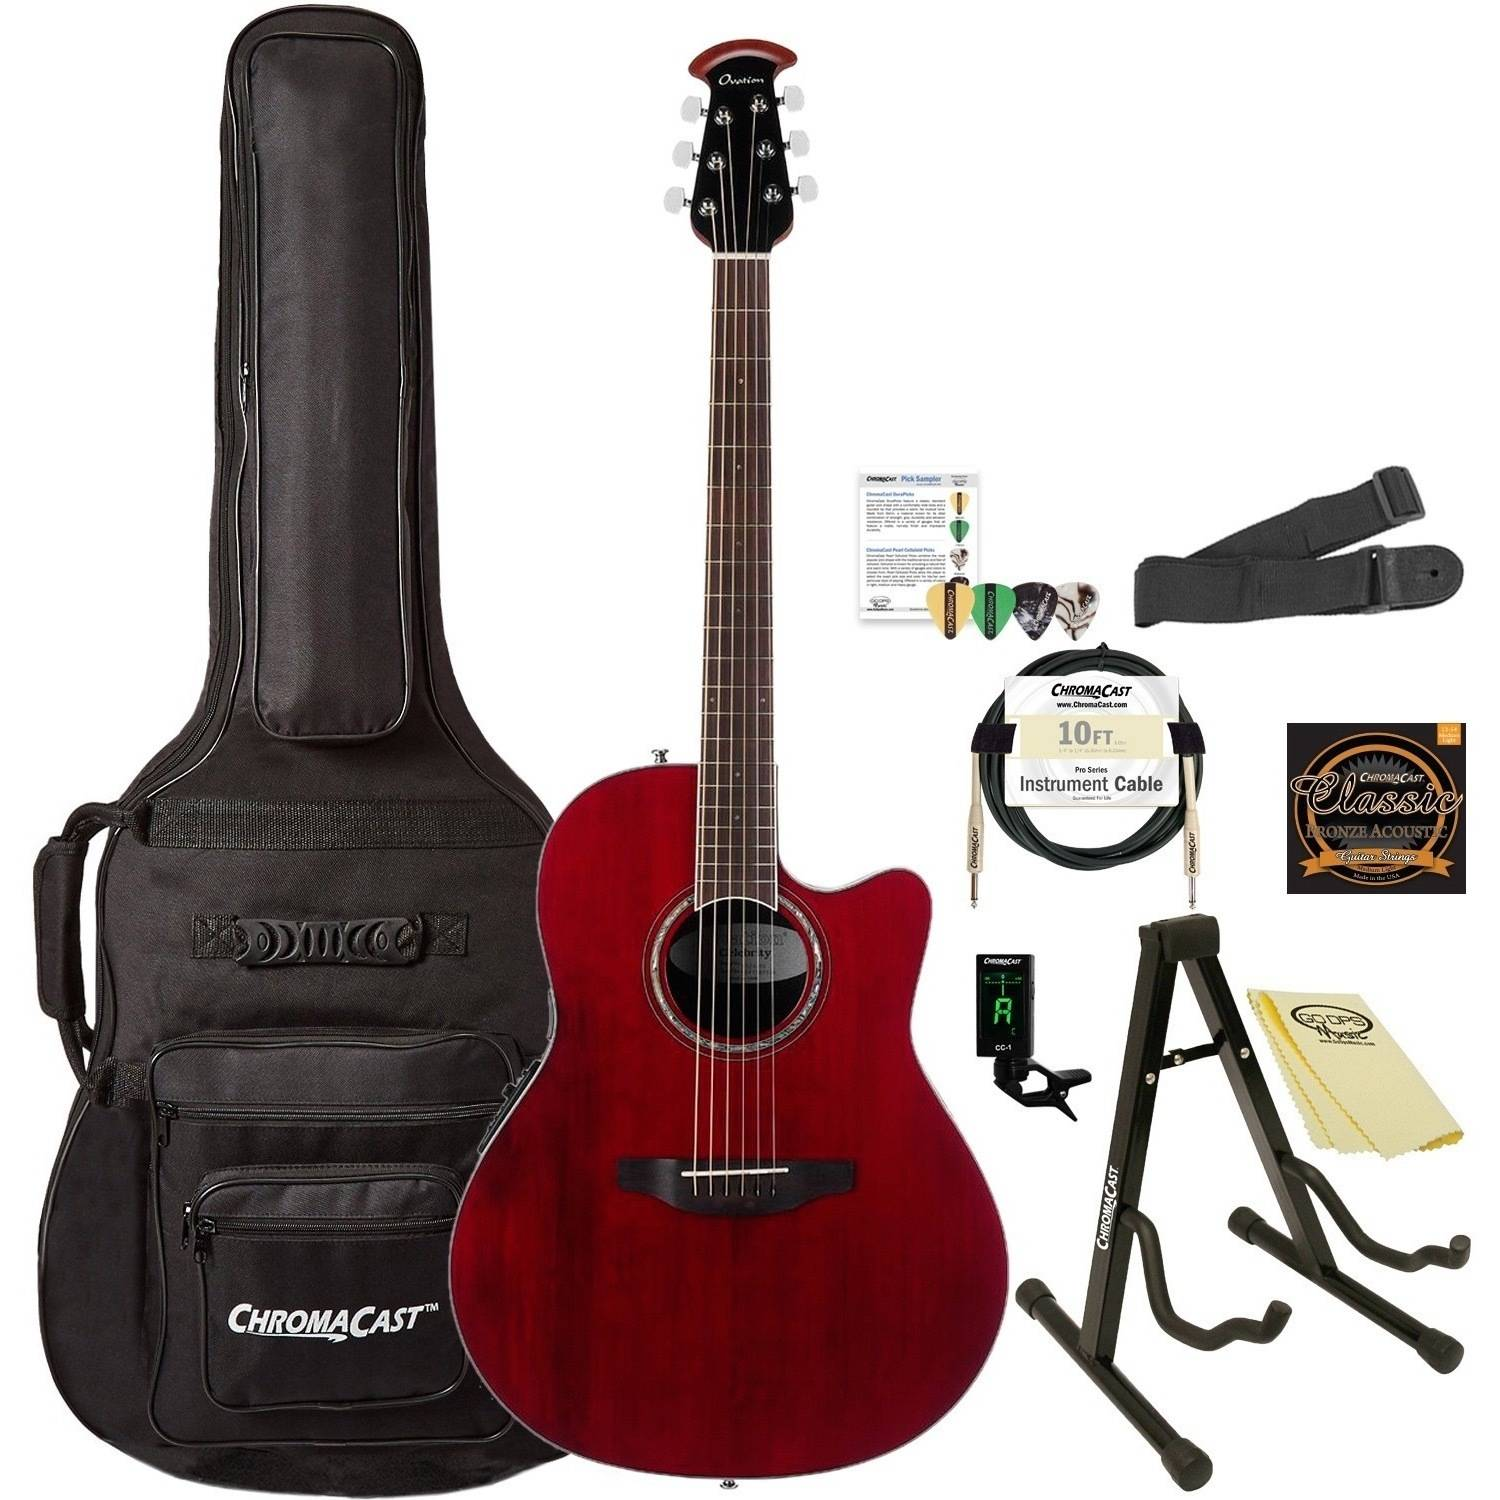 Ovation Celebrity Standard CS28-RR Super Shallow Acoustic-Electric Guitar (Ruby Red Finish) with ChromaCast Accessories